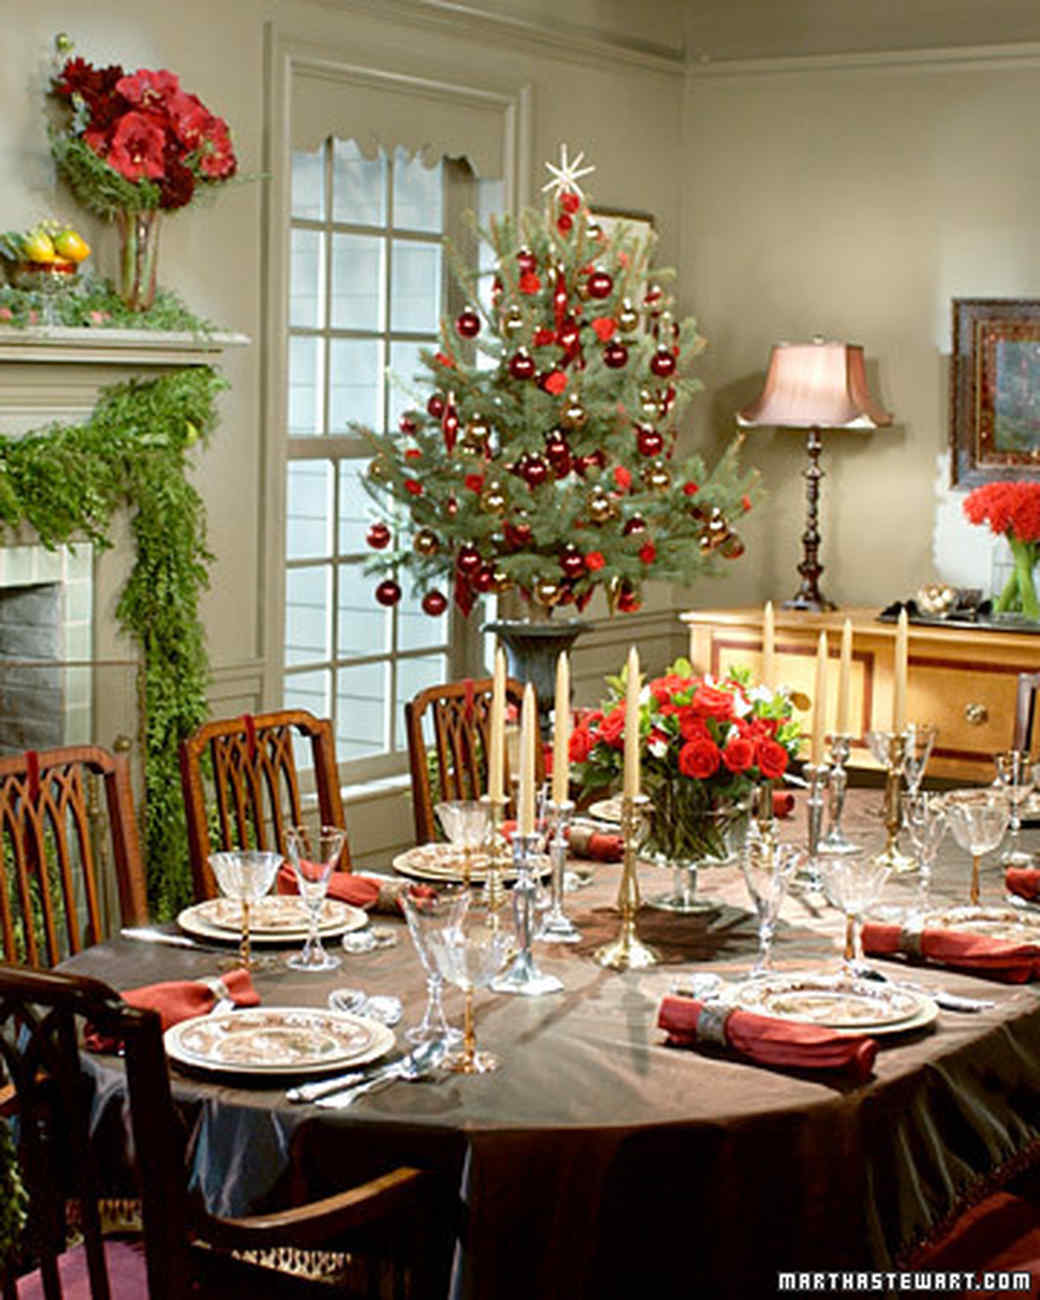 Christmas decor to hang from ceiling - Christmas Table Decorations Martha Stewart